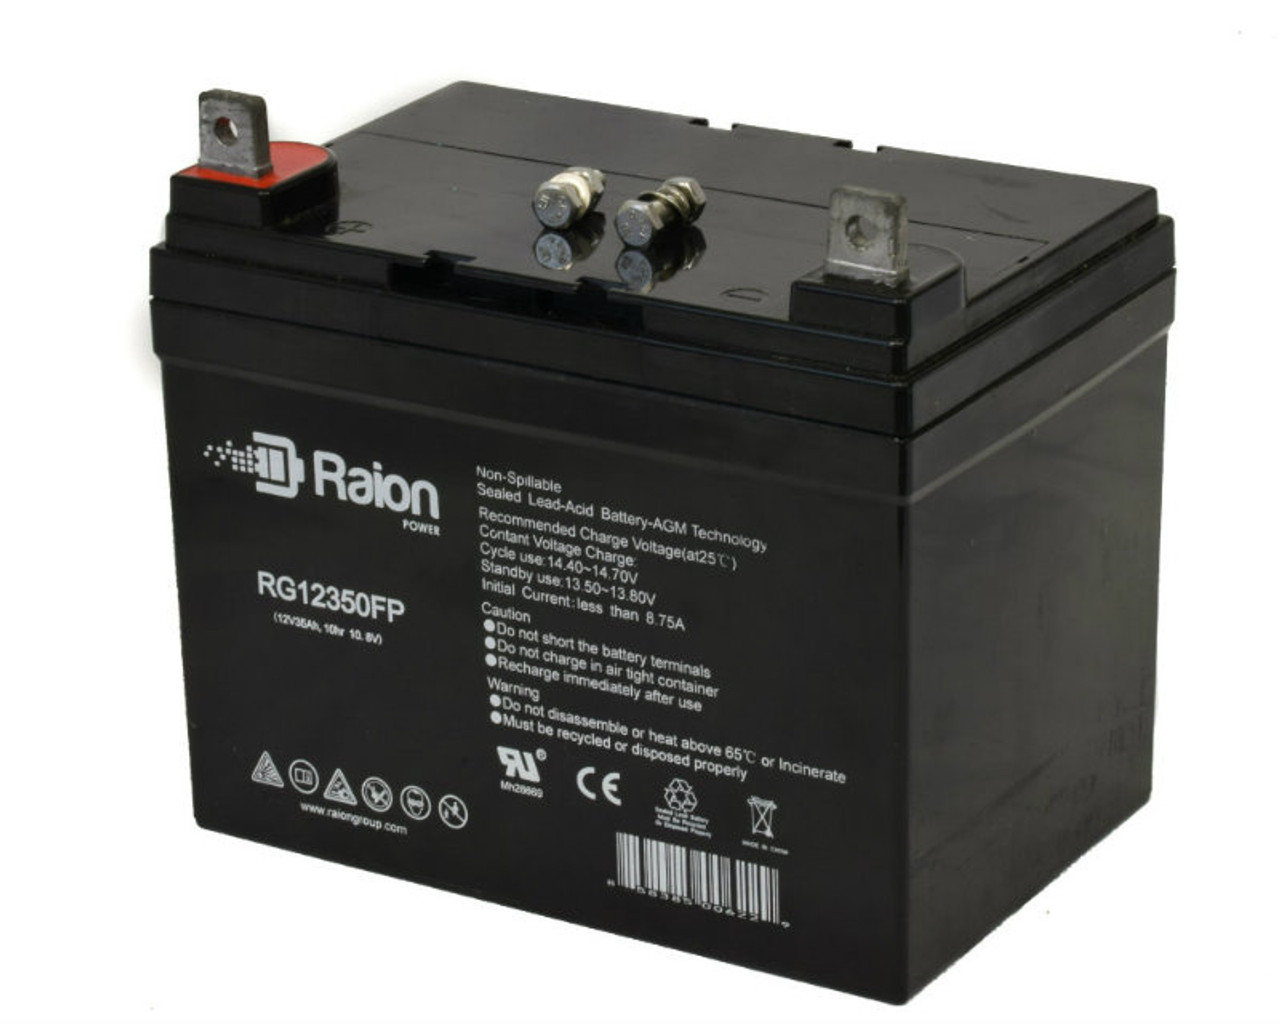 RG12350FP Sealed Lead Acid Battery Pack For Invacare Runabout Mobility Scooter